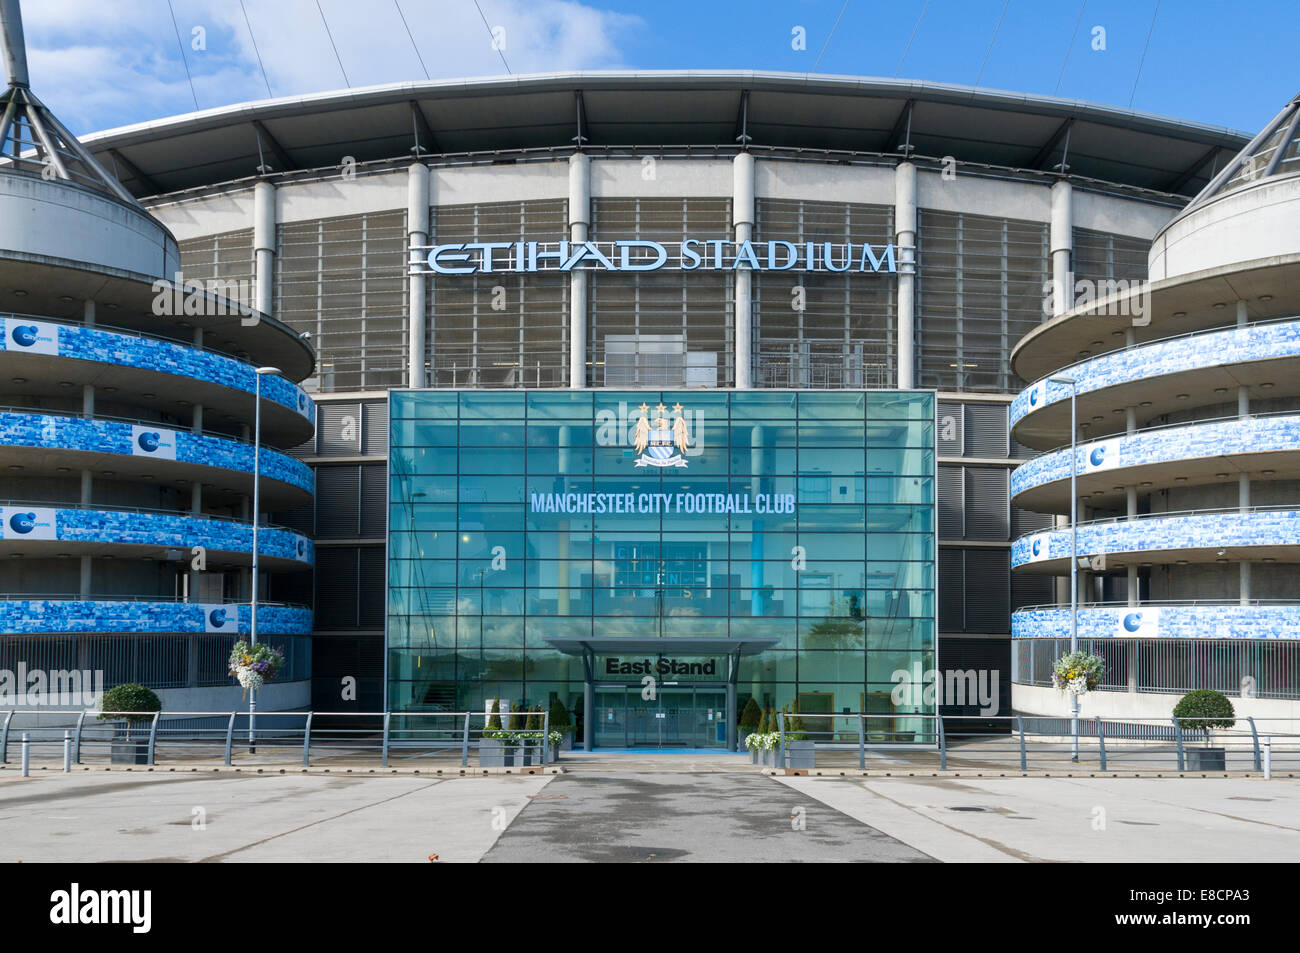 City of Manchester Stadium (Etihad Stadium), East Stand entrance, Clayton, Manchester, England, UK. - Stock Image